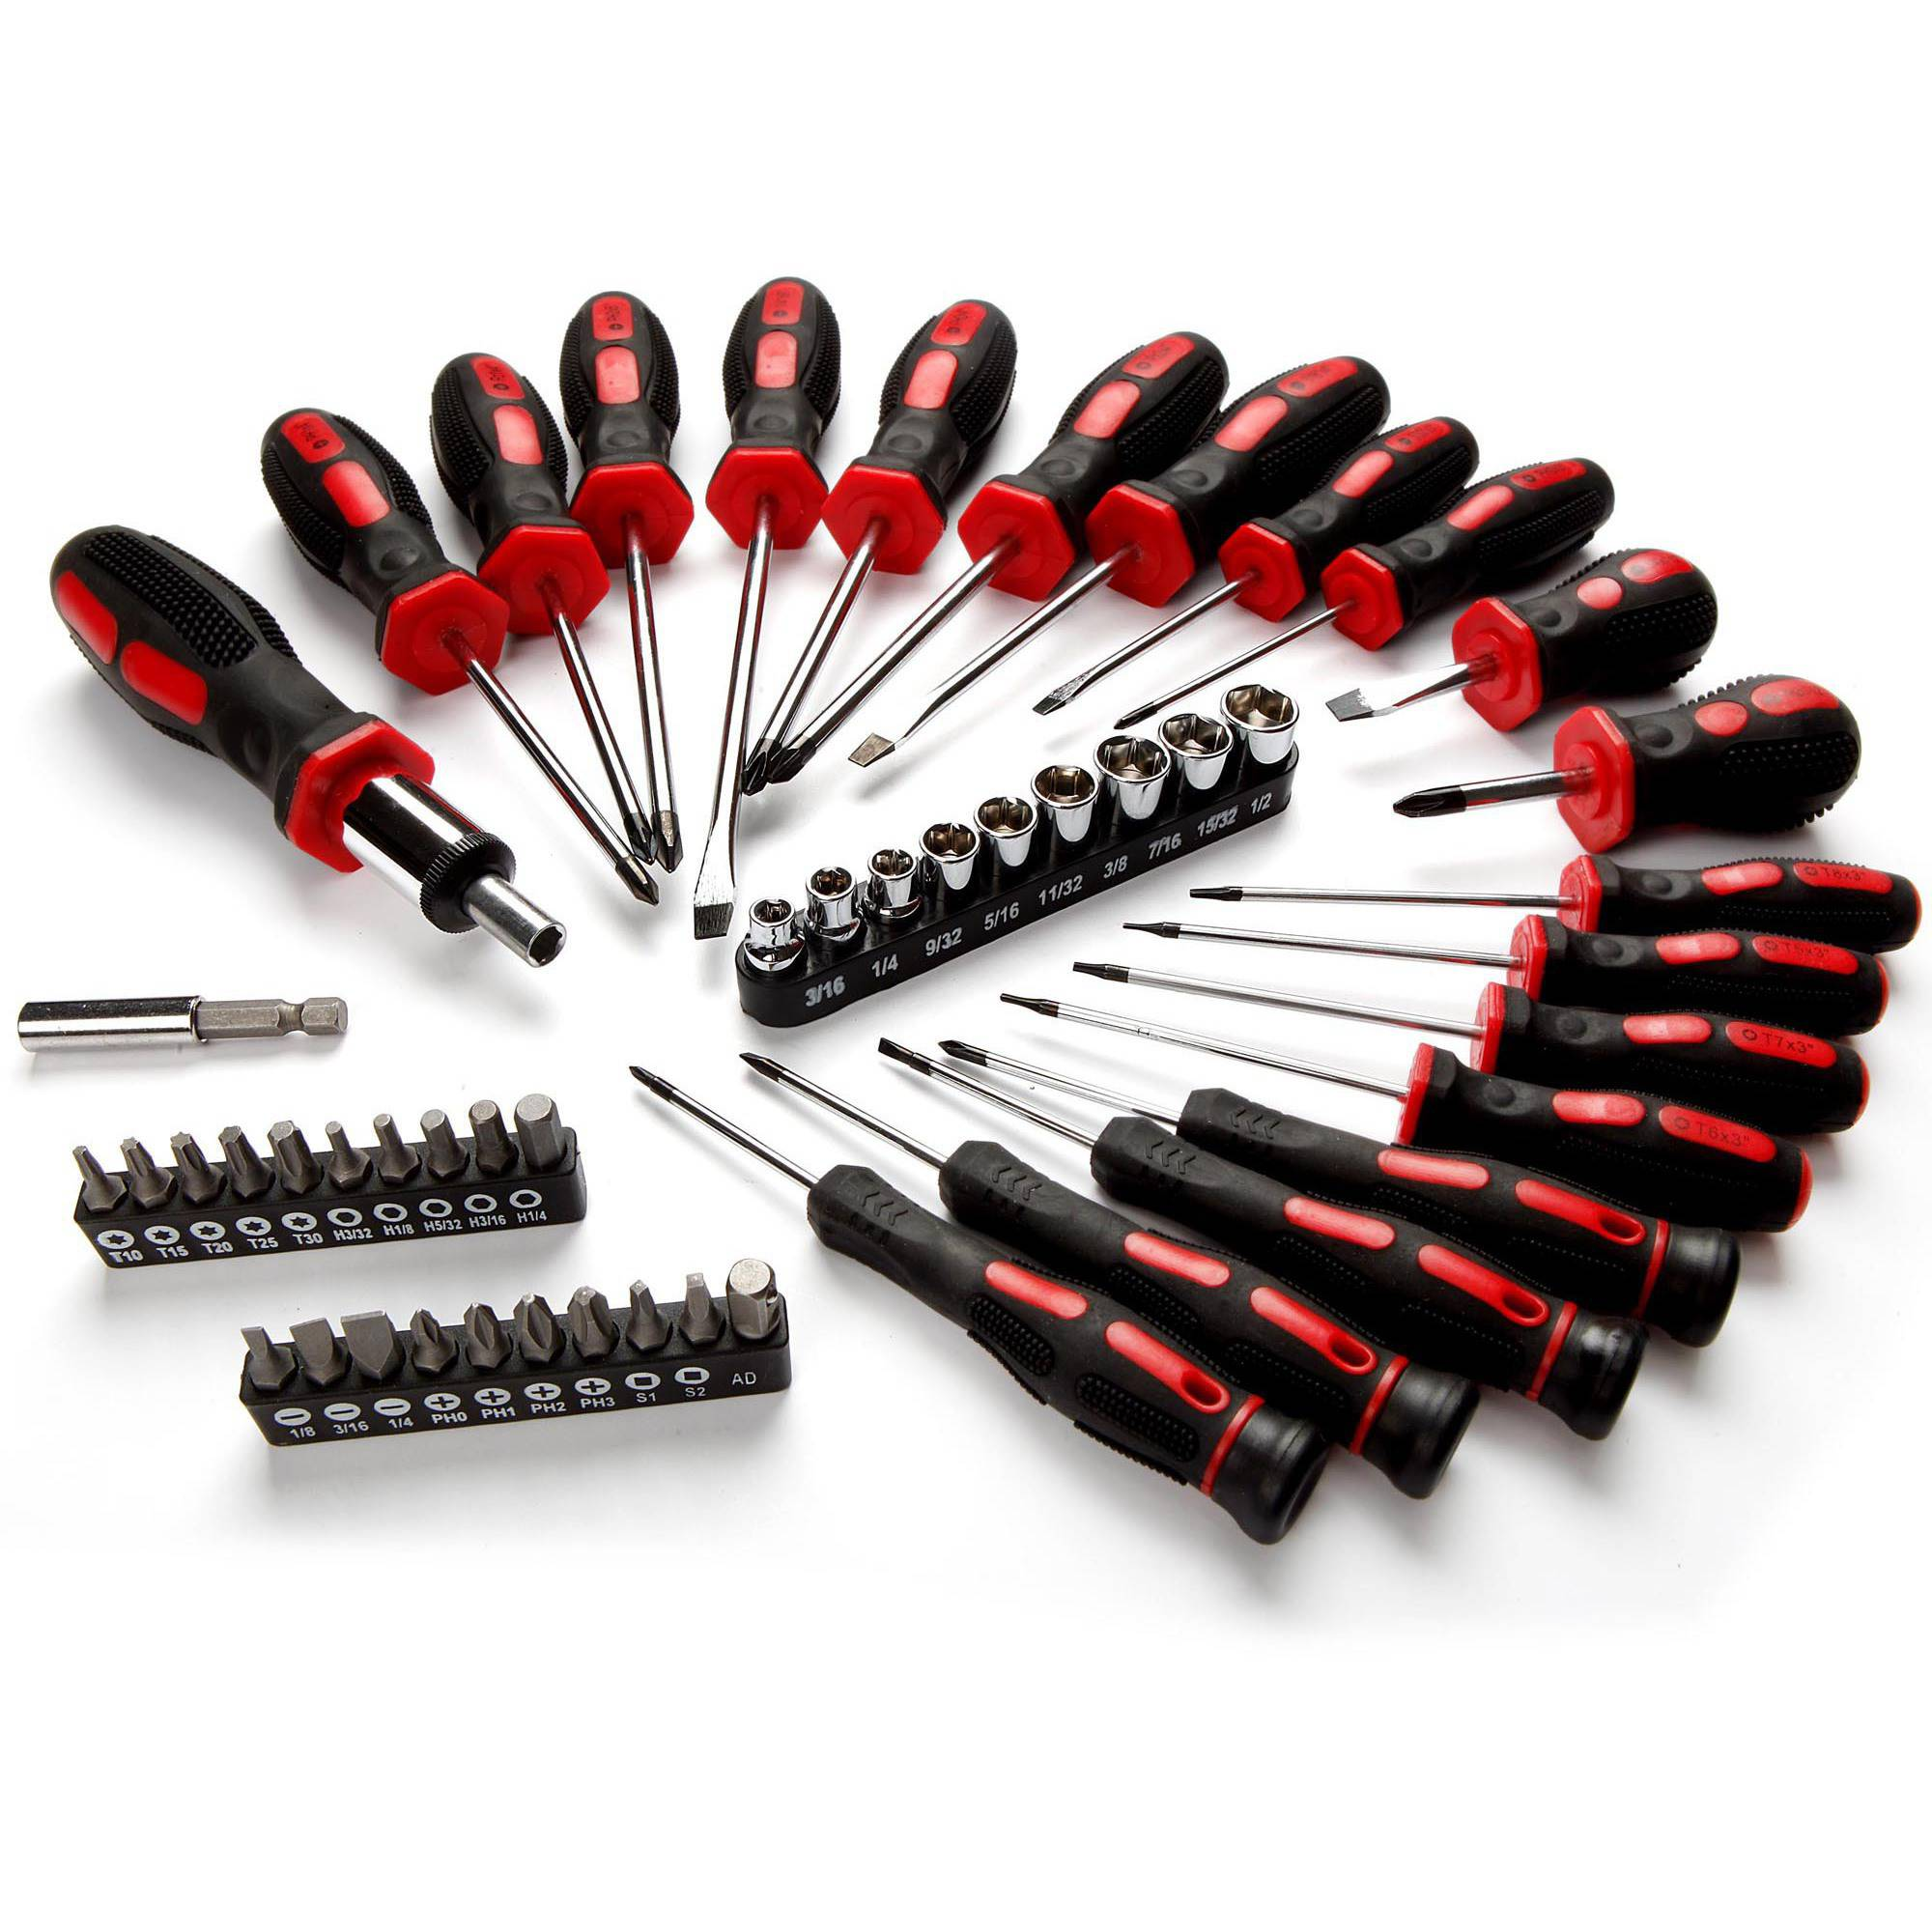 Hyper Tough 50 Piece Screwdriver Set